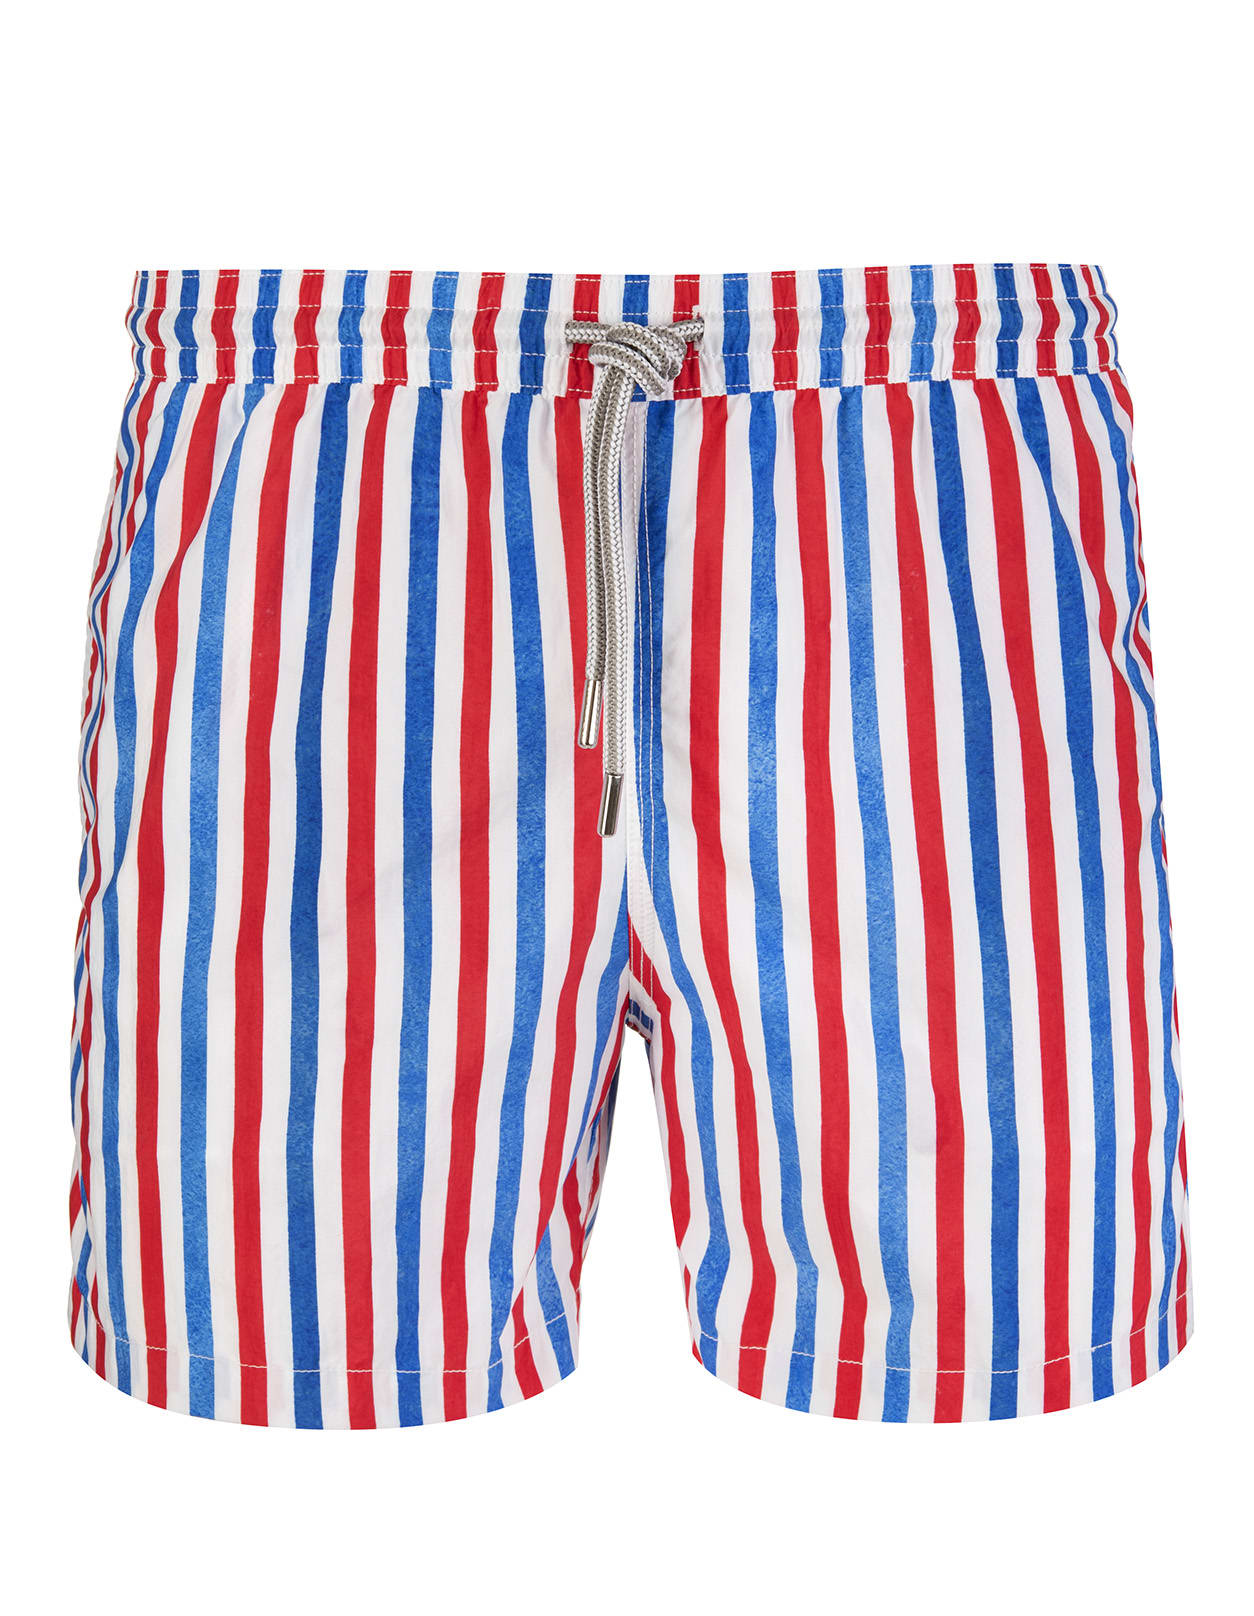 Red And Blue Equidistant Striped Swimsuit